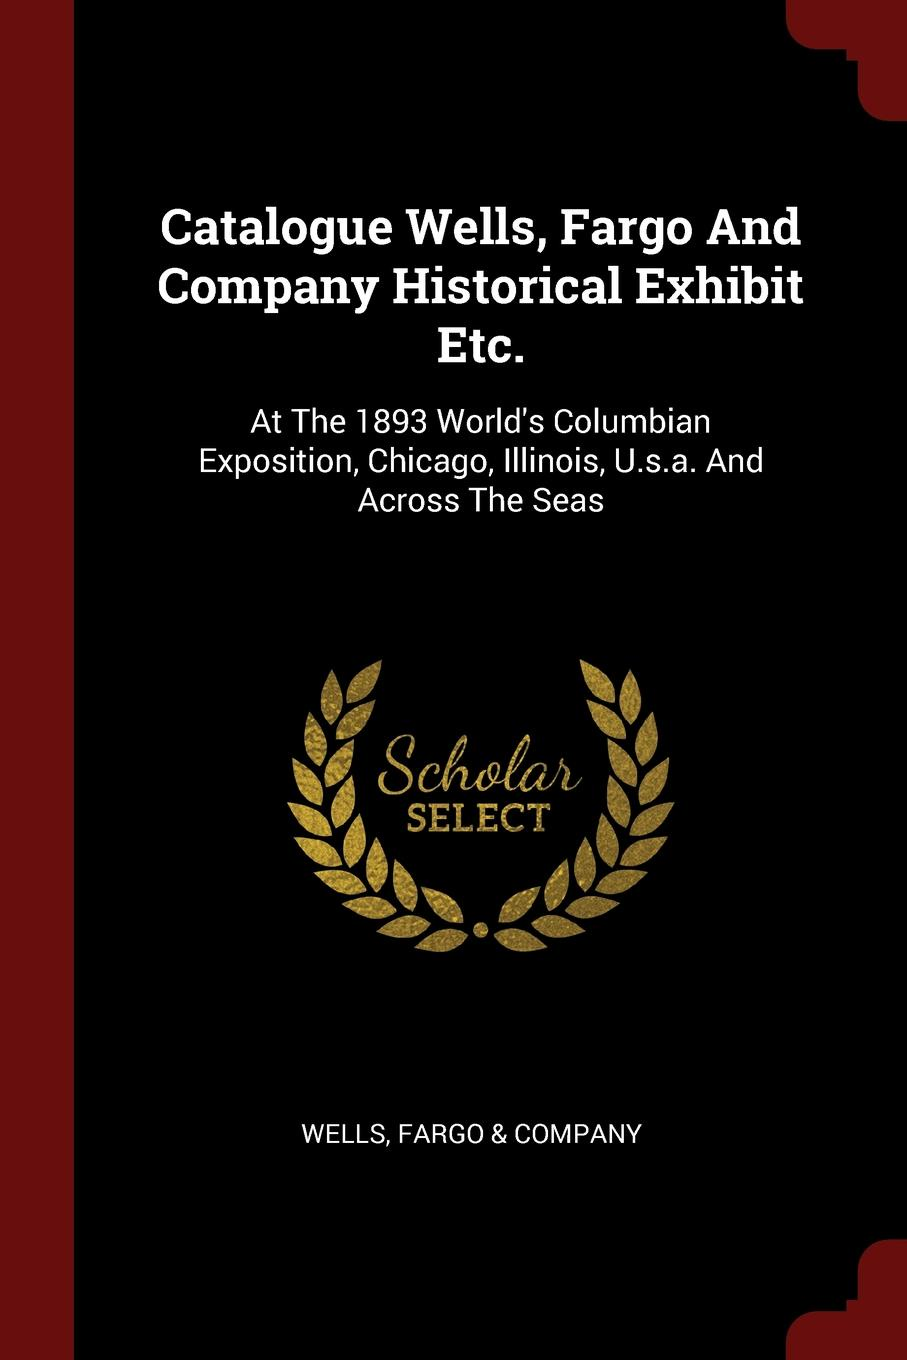 Catalogue Wells, Fargo And Company Historical Exhibit Etc. At The 1893 World.s Columbian Exposition, Chicago, Illinois, U.s.a. And Across The Seas